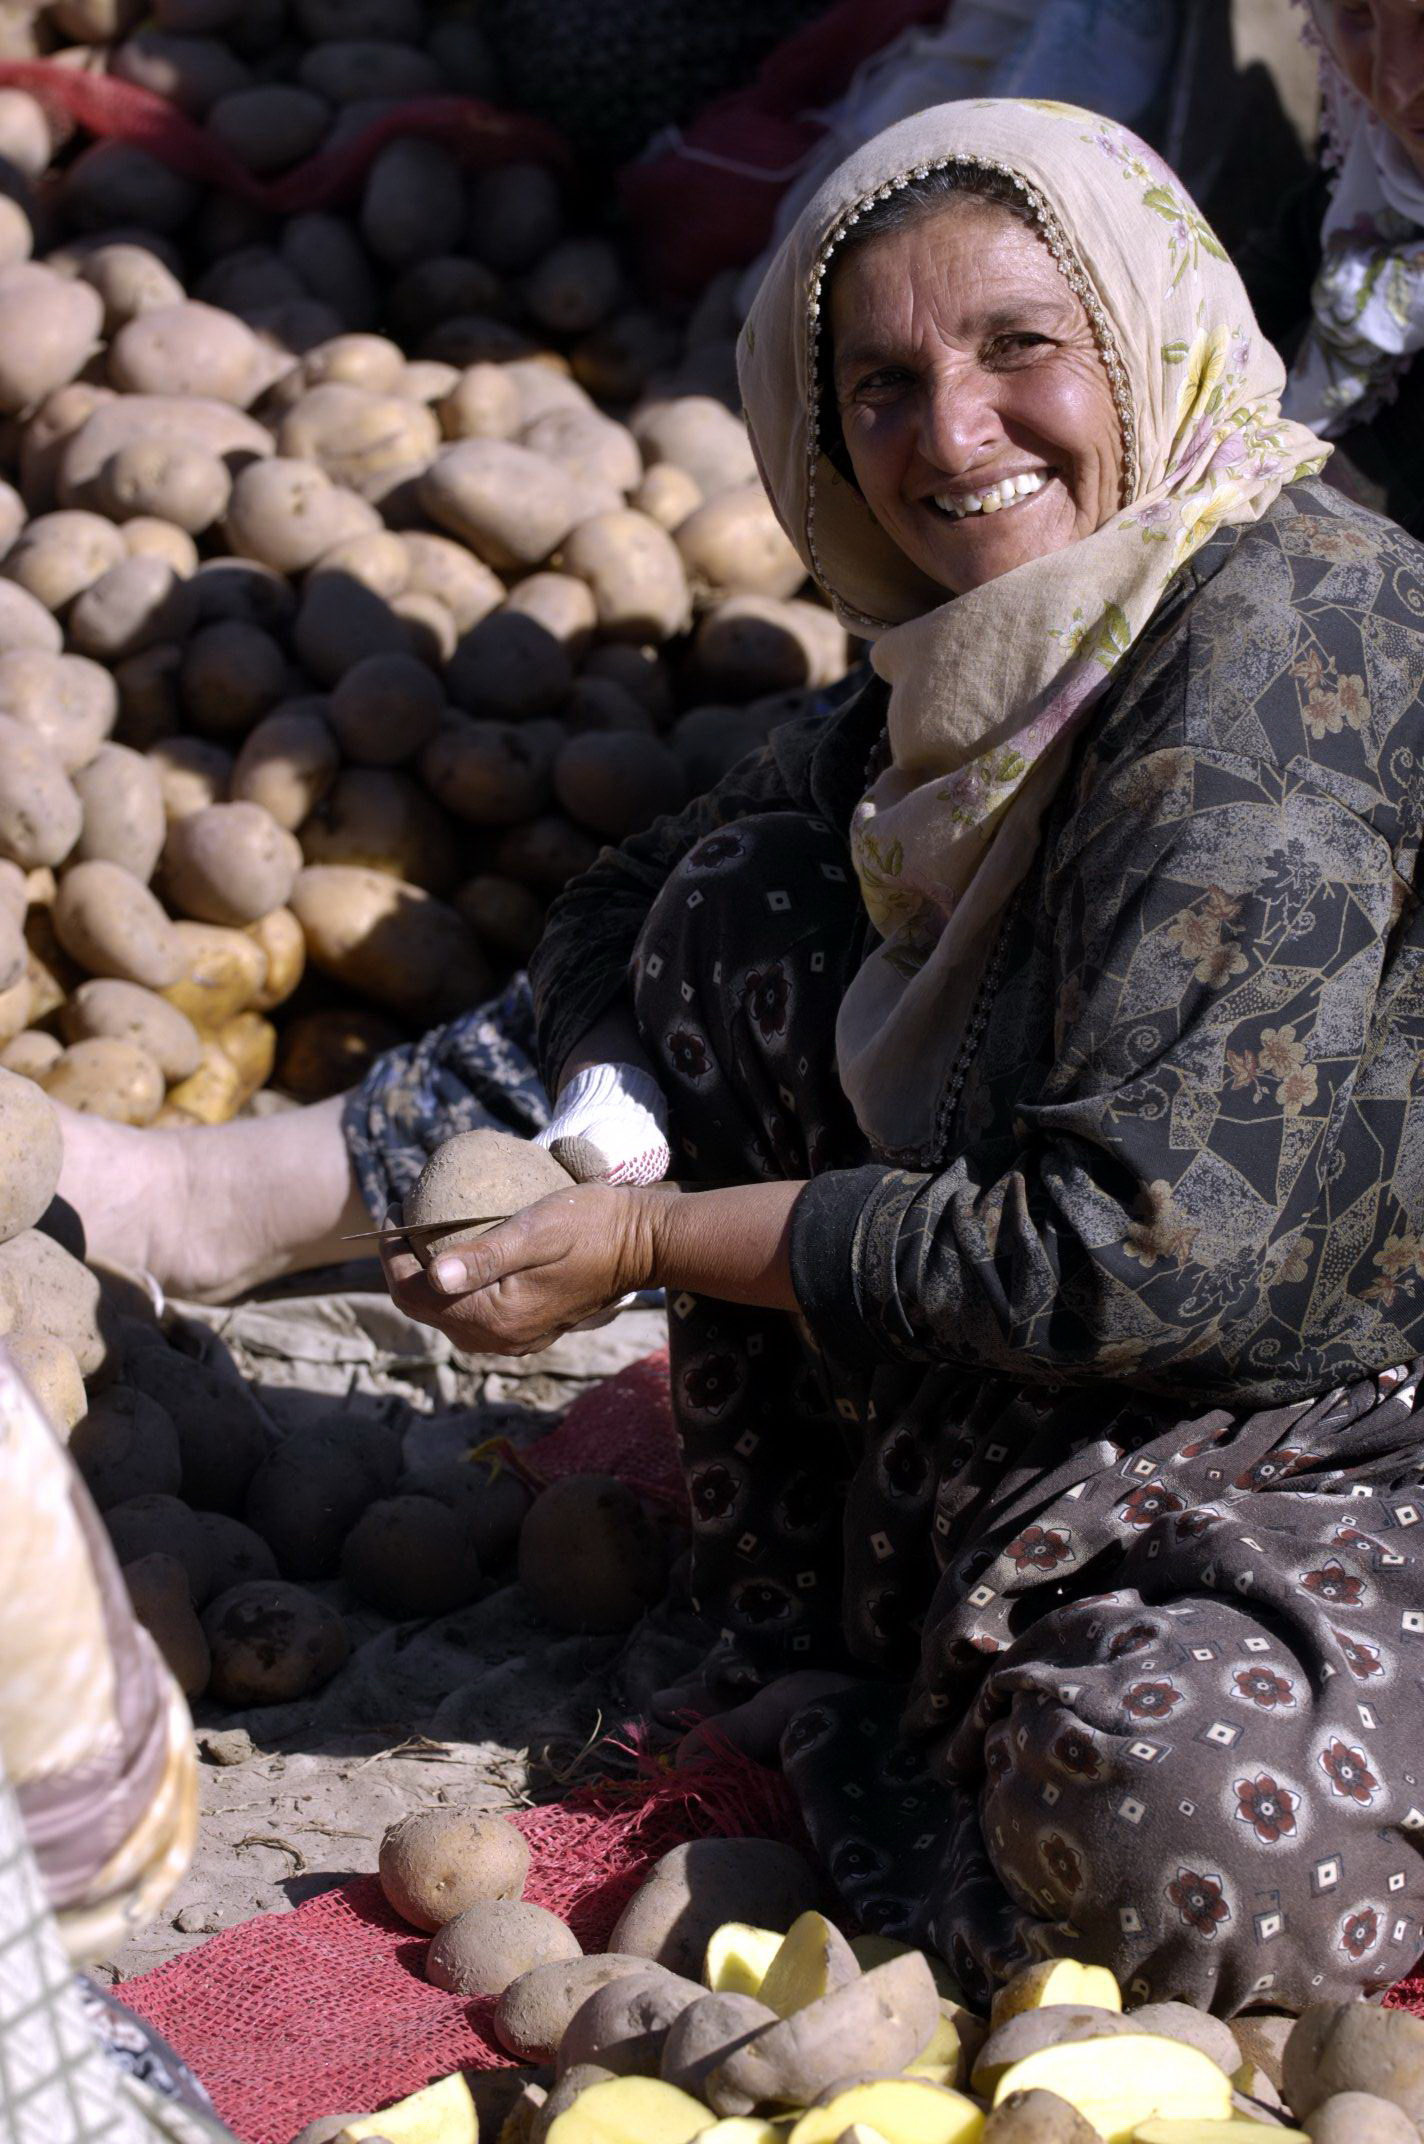 cappadocia woman cutting potatoes A Hidden Side of Turkeys Cappadocia: How to Go Where Others Dont